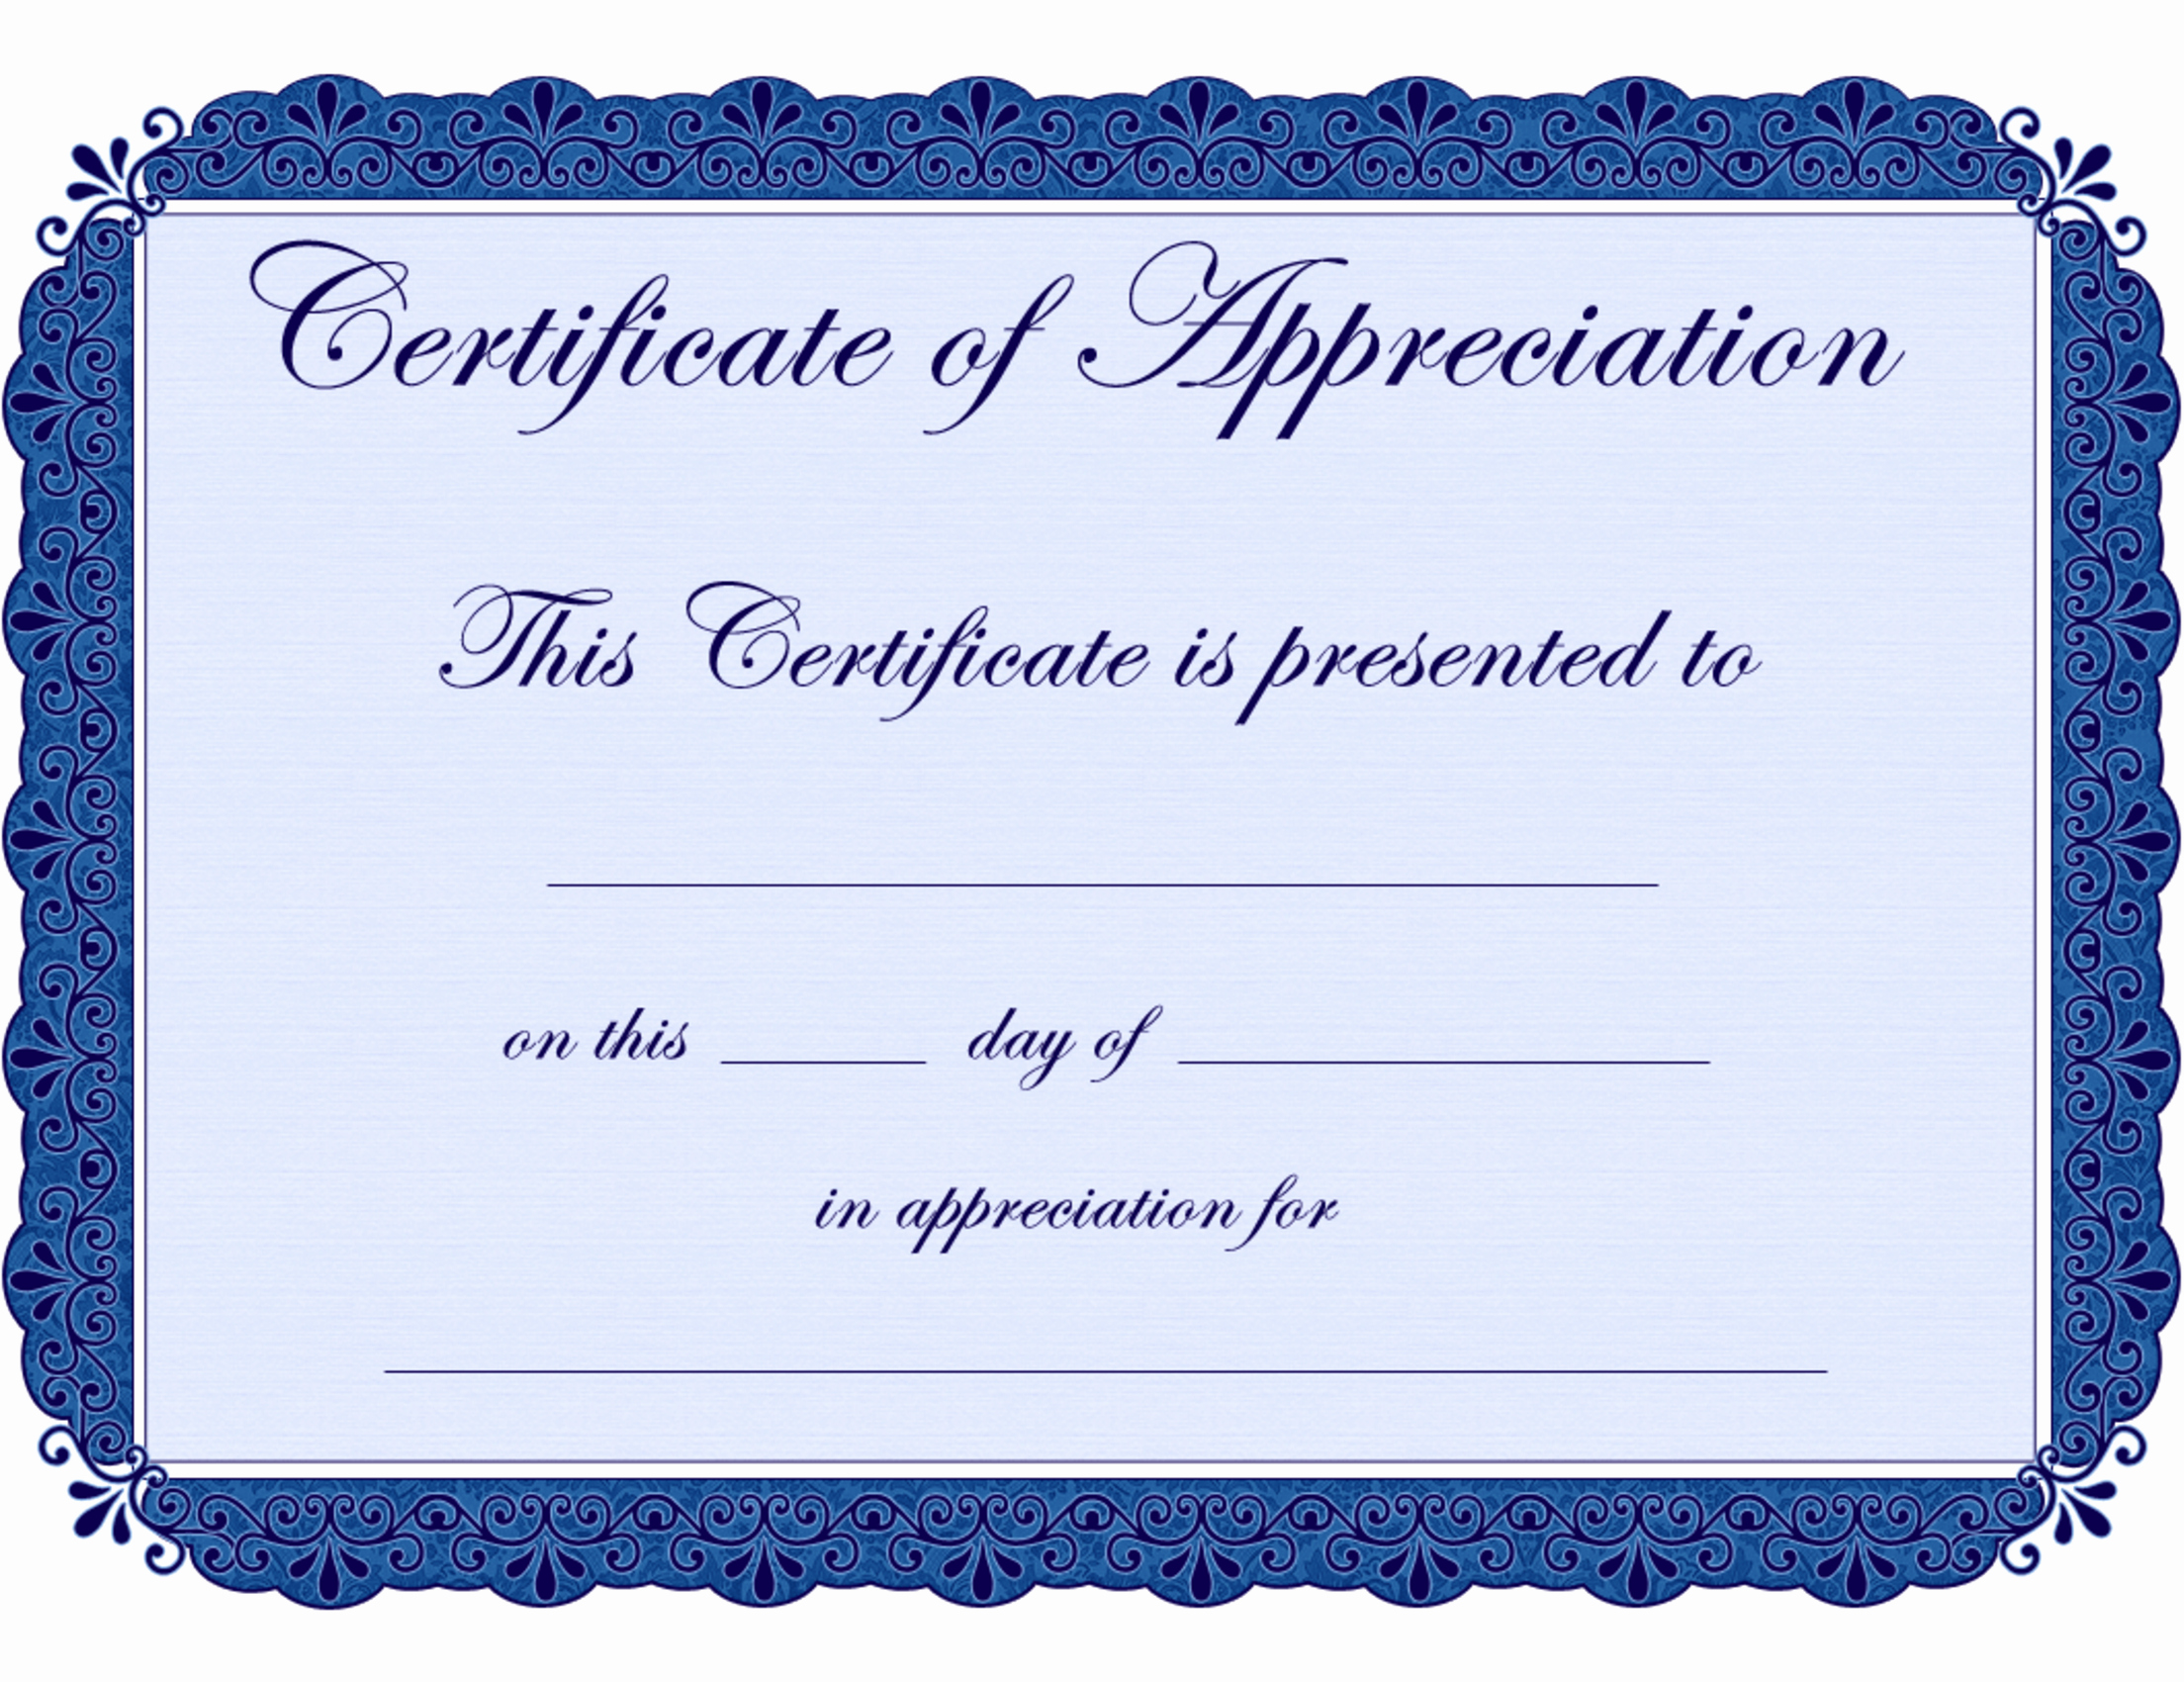 Certificate Of Appreciation Graduation Lovely Free Printable Certificates Certificate Of Appreciation